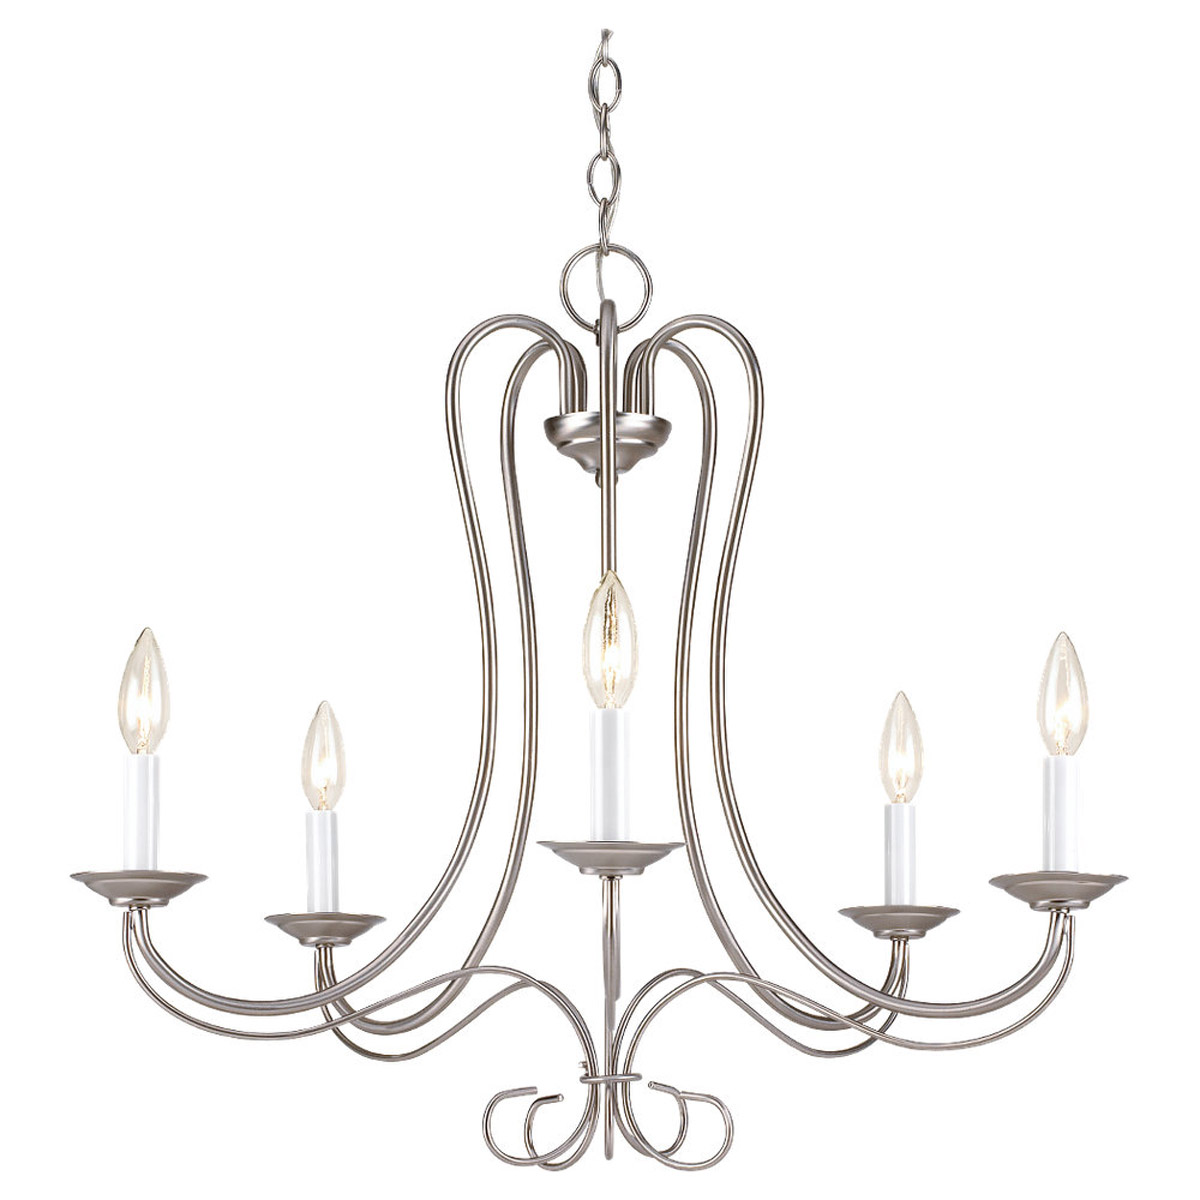 Sea Gull Lighting Traditional 5 Light Chandelier in Brushed Nickel 3116-962 photo